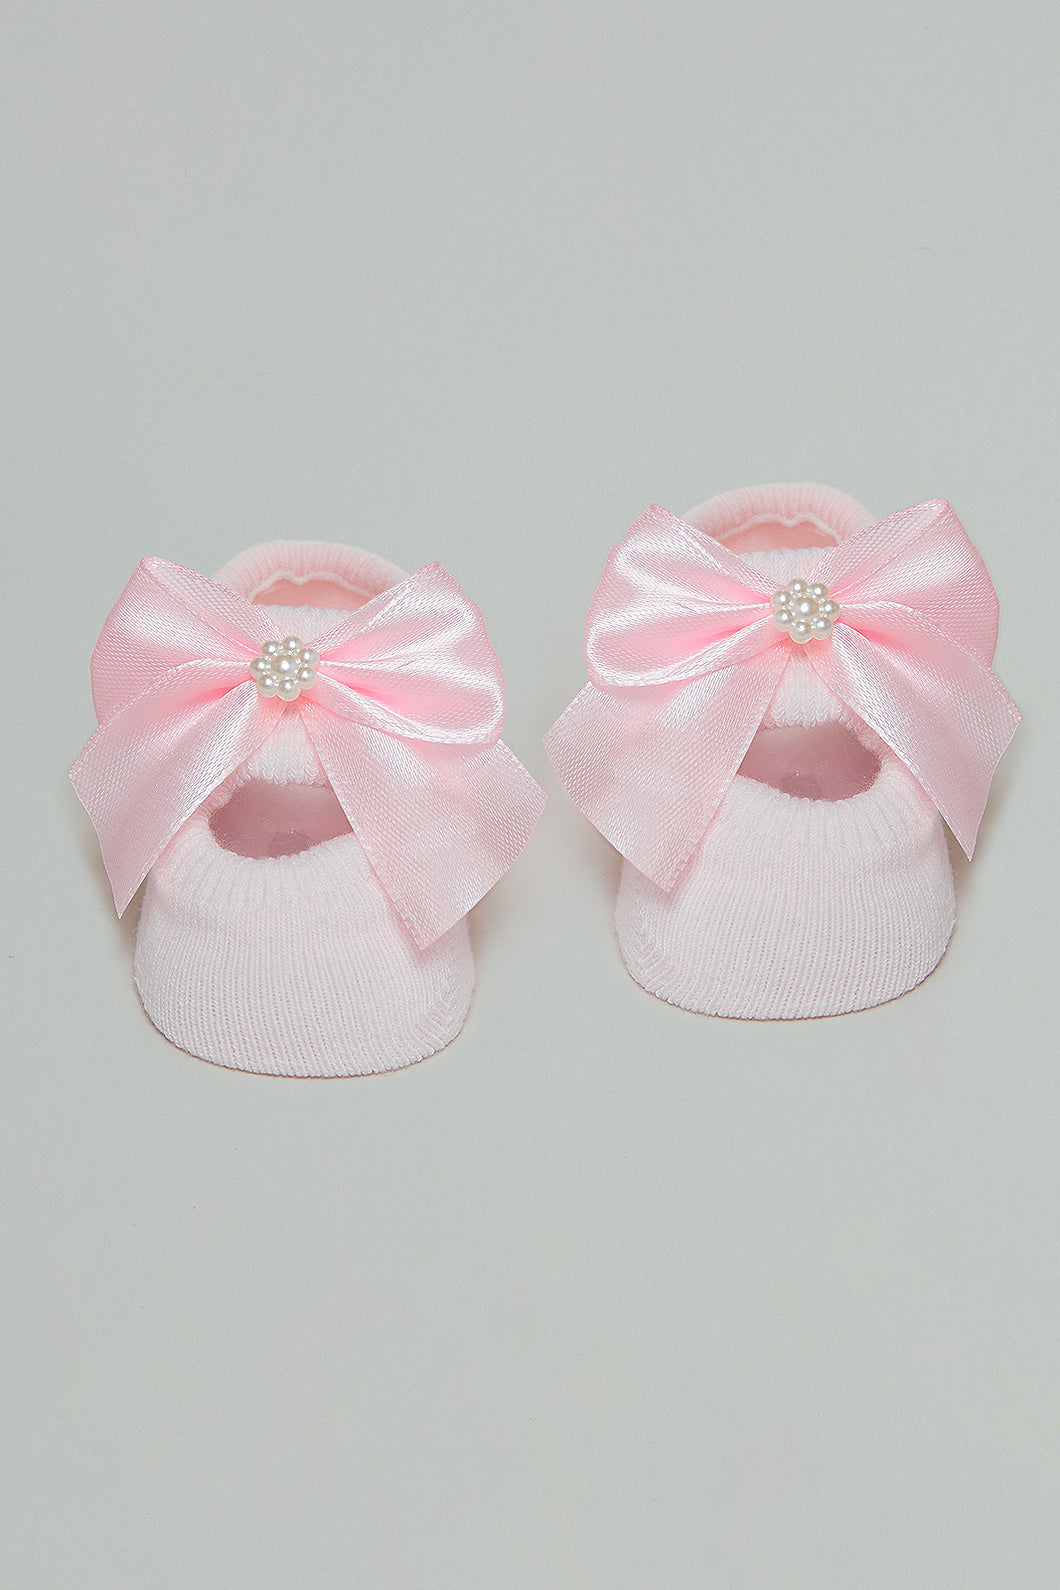 Pink Pair Of Baby Booties With Bow